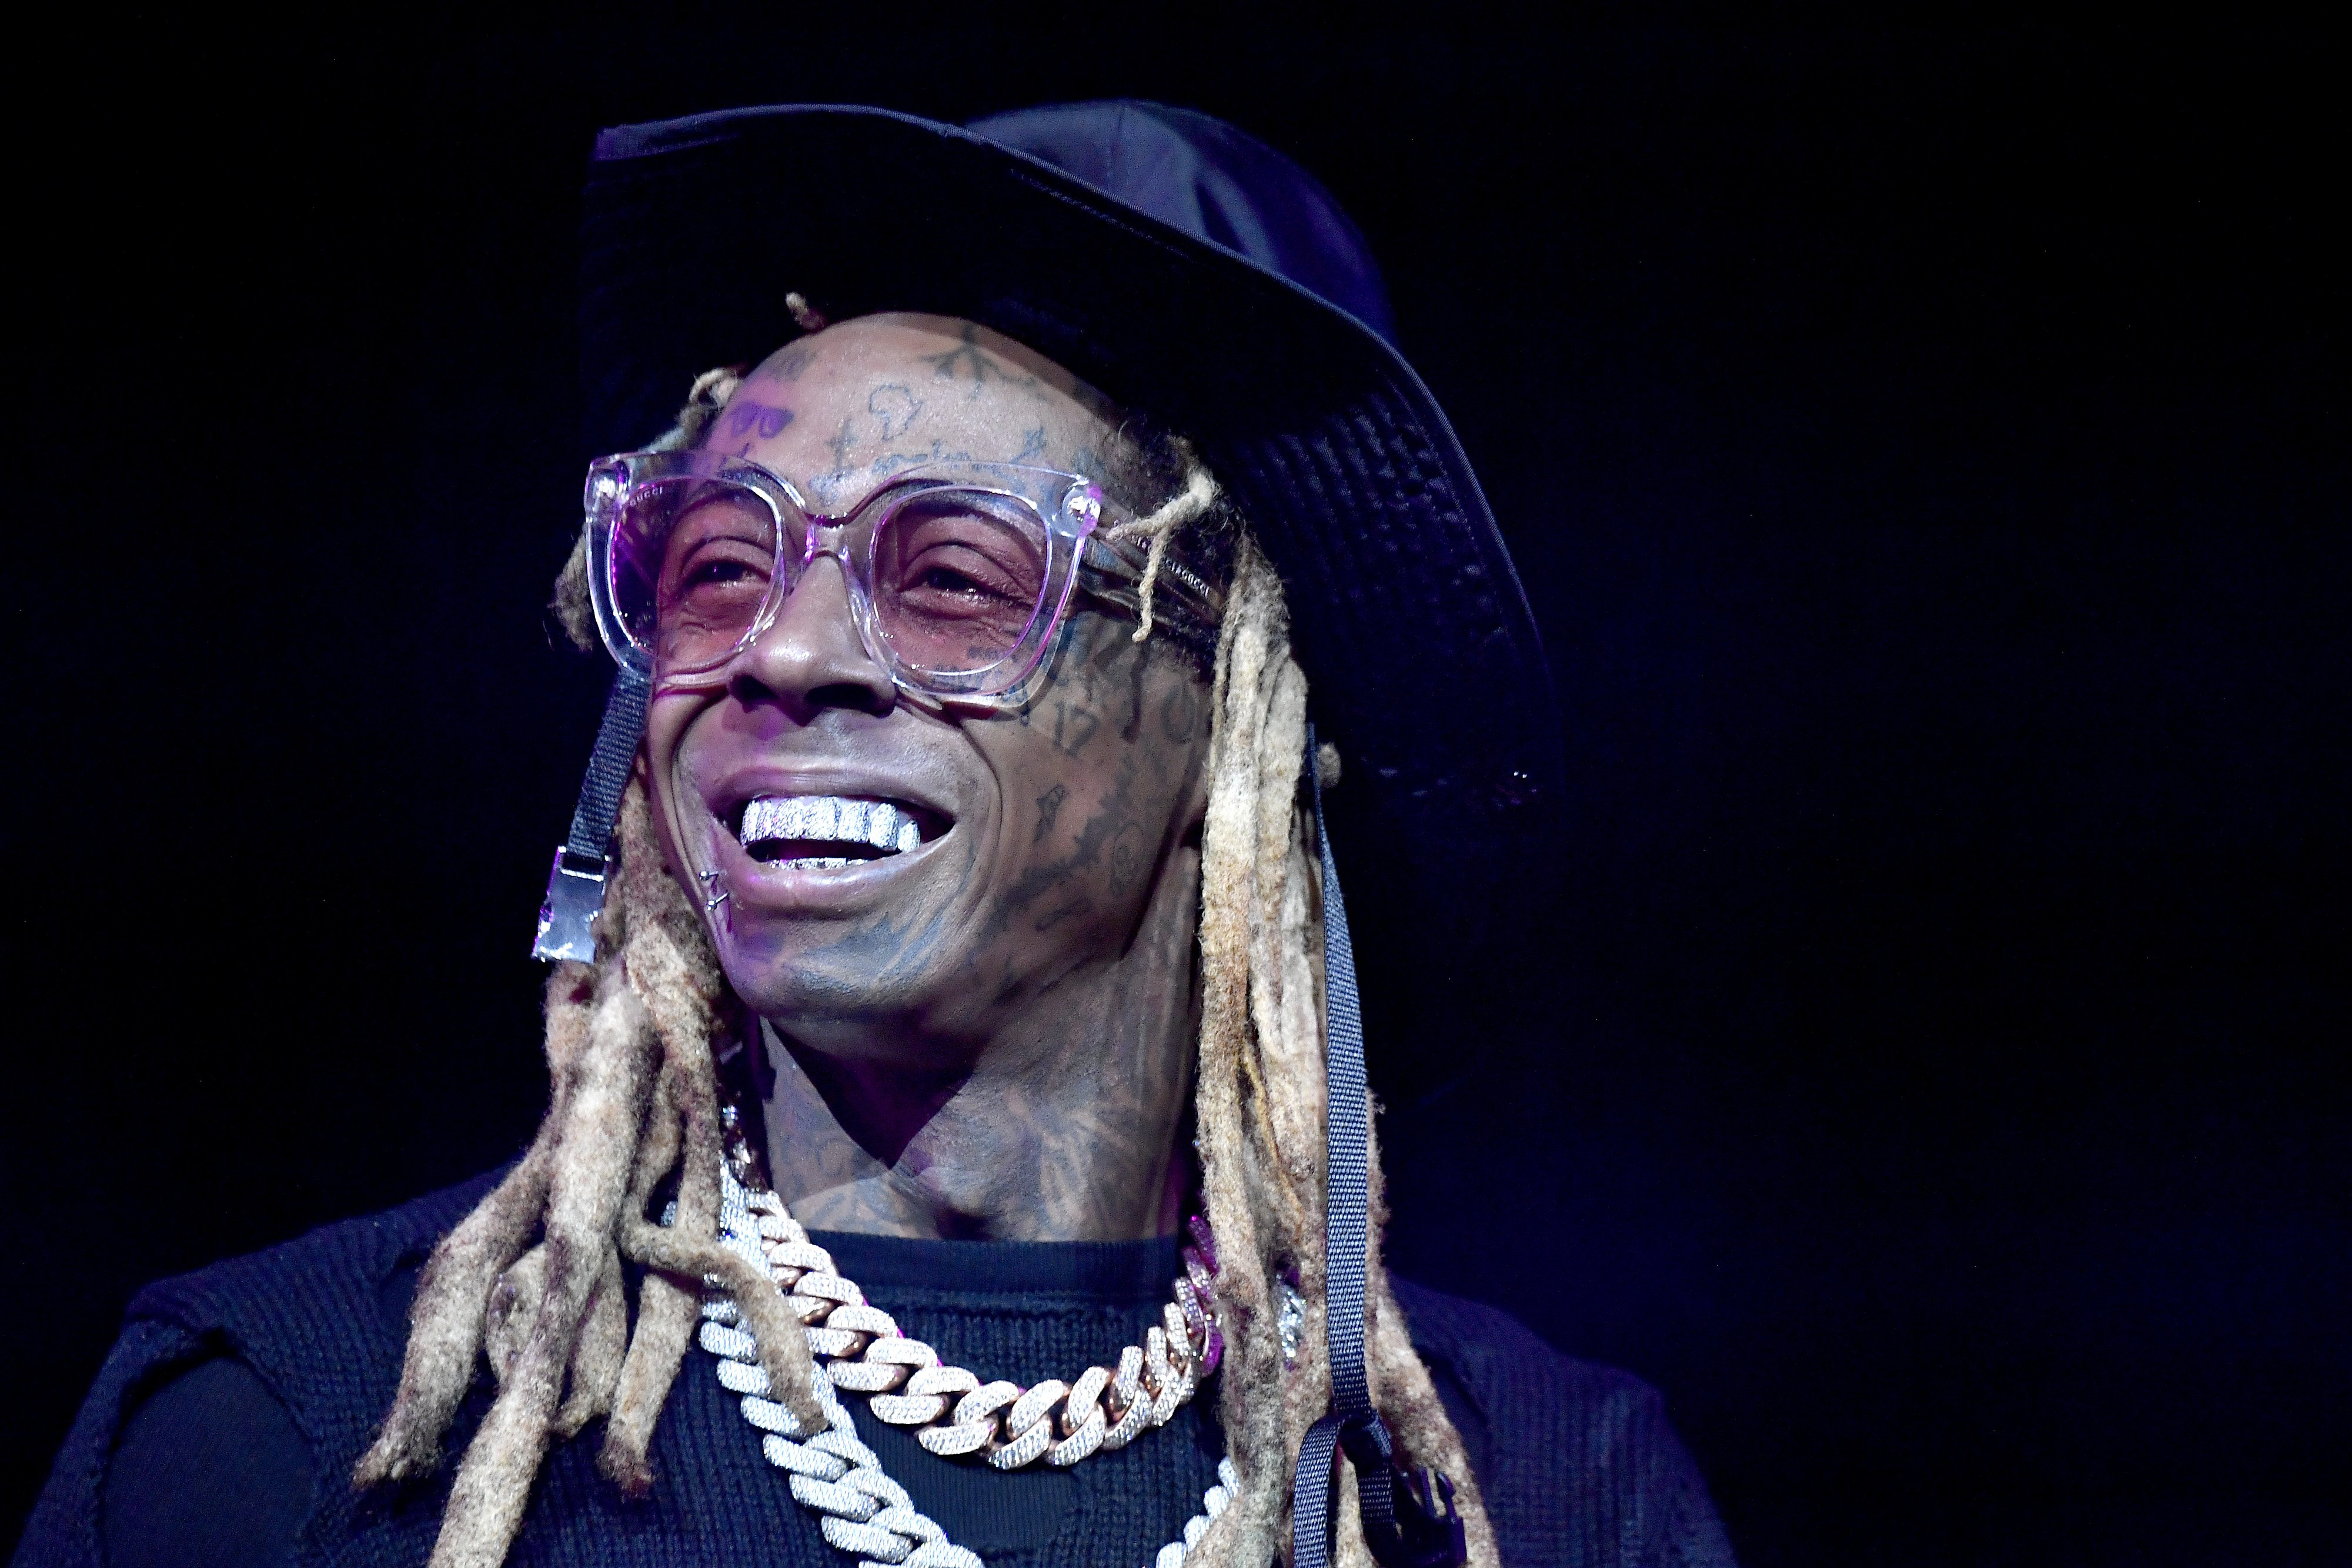 Lil Wayne on stage during the EA Sports Bowl at Bud Light Super Bowl Music Fest in Miami, Florida | Photo: Frazer Harrison/Getty Images for EA Sports Bowl